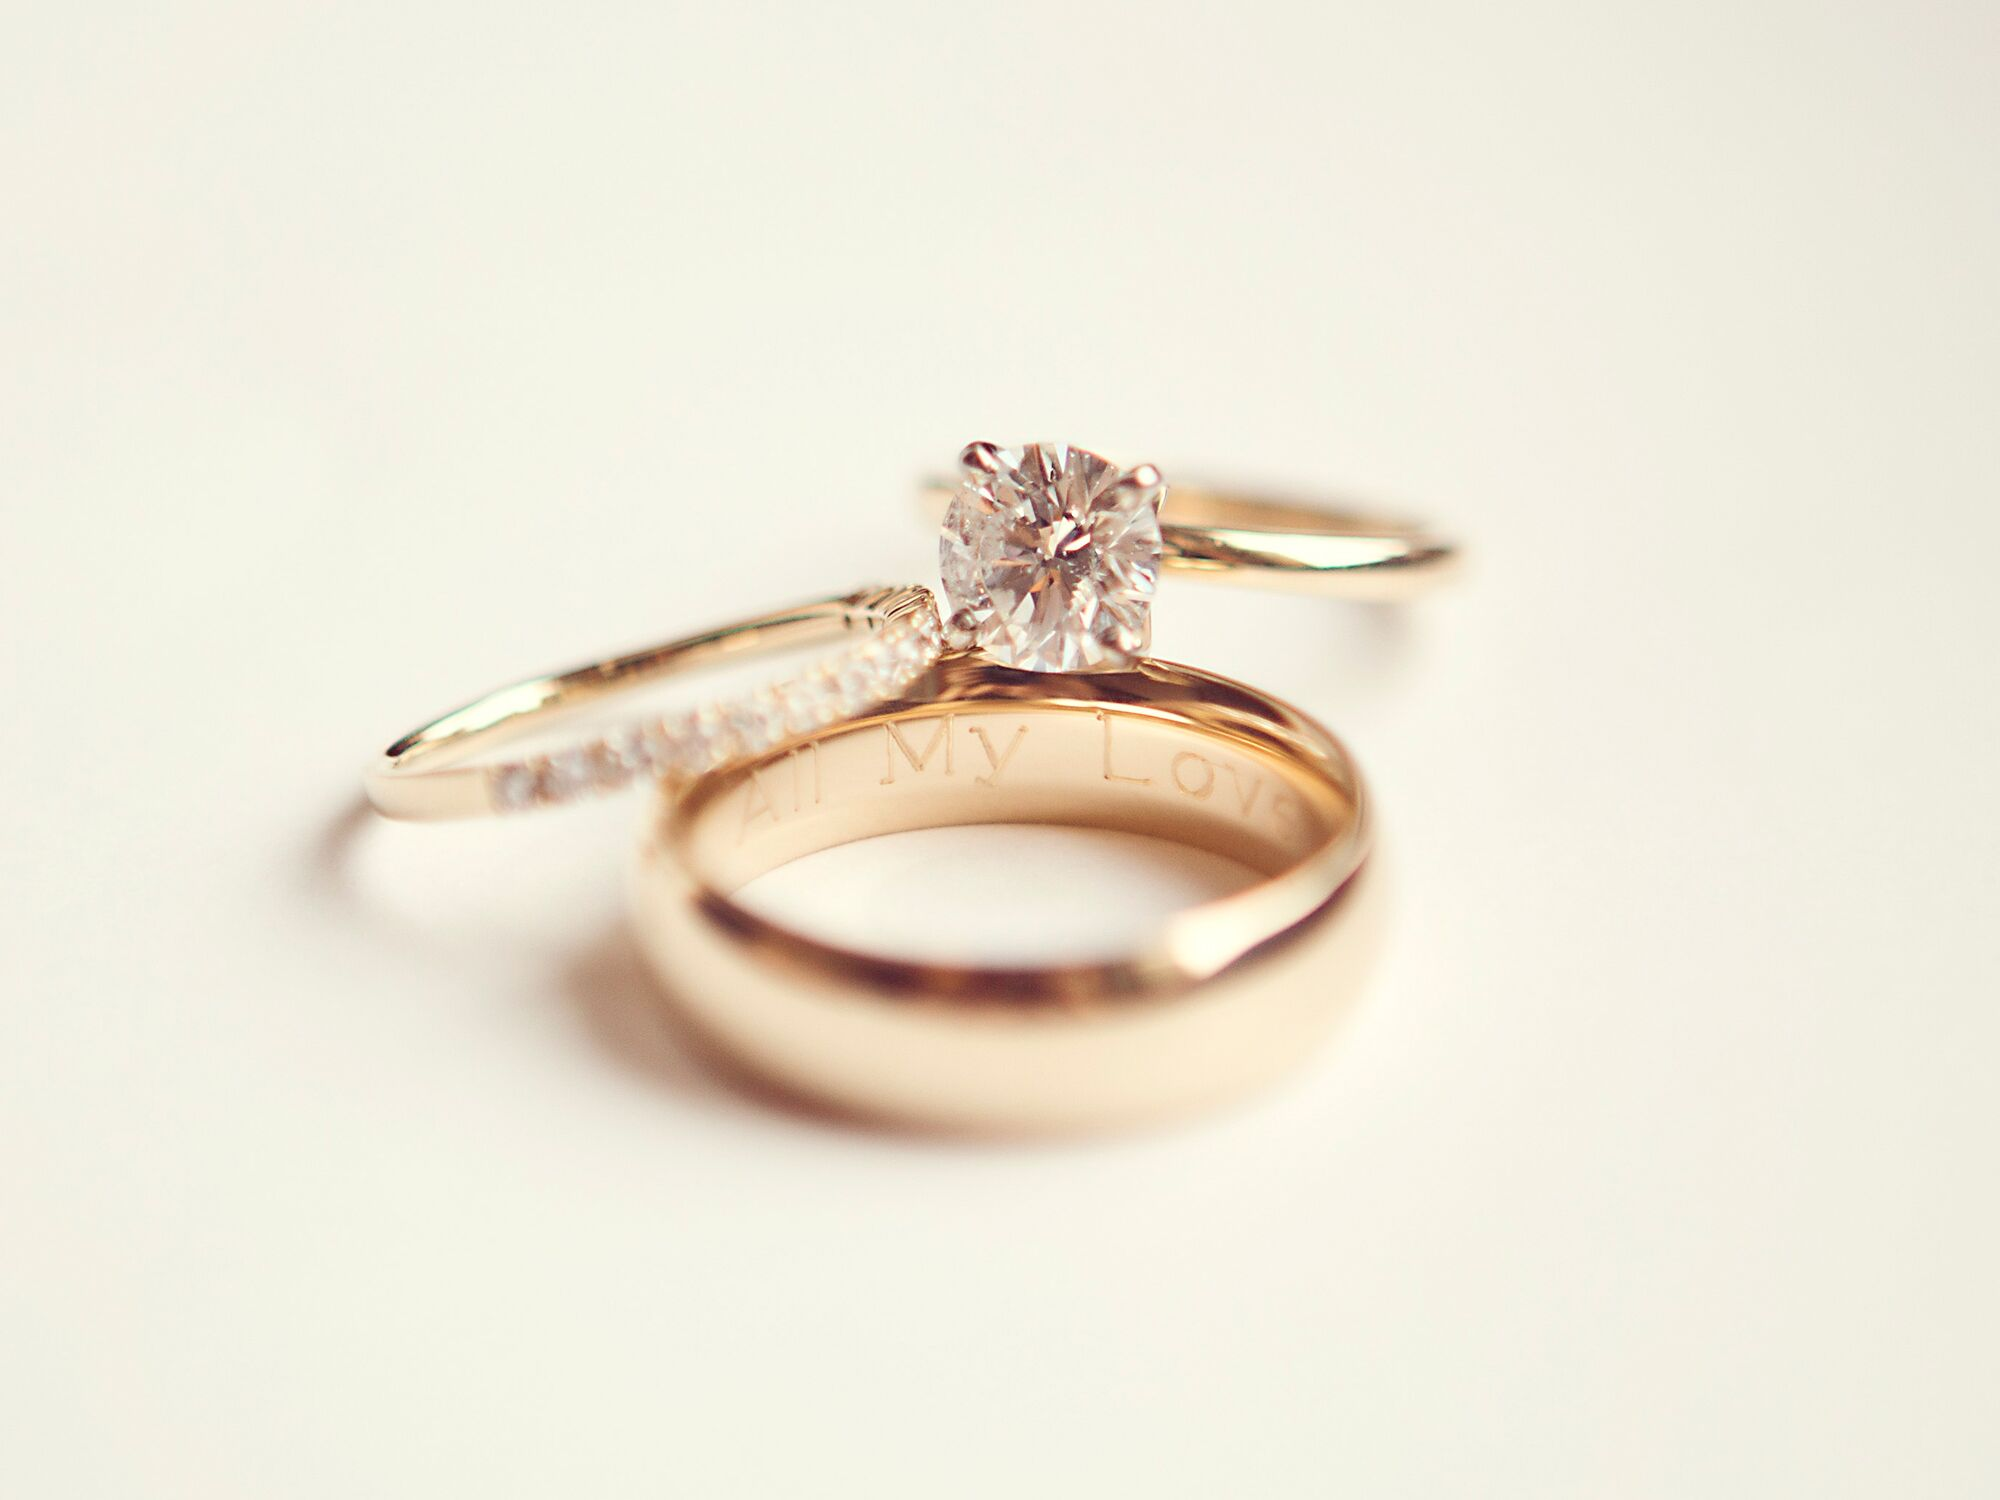 Wedding Ring Engraving Ideas & Tips